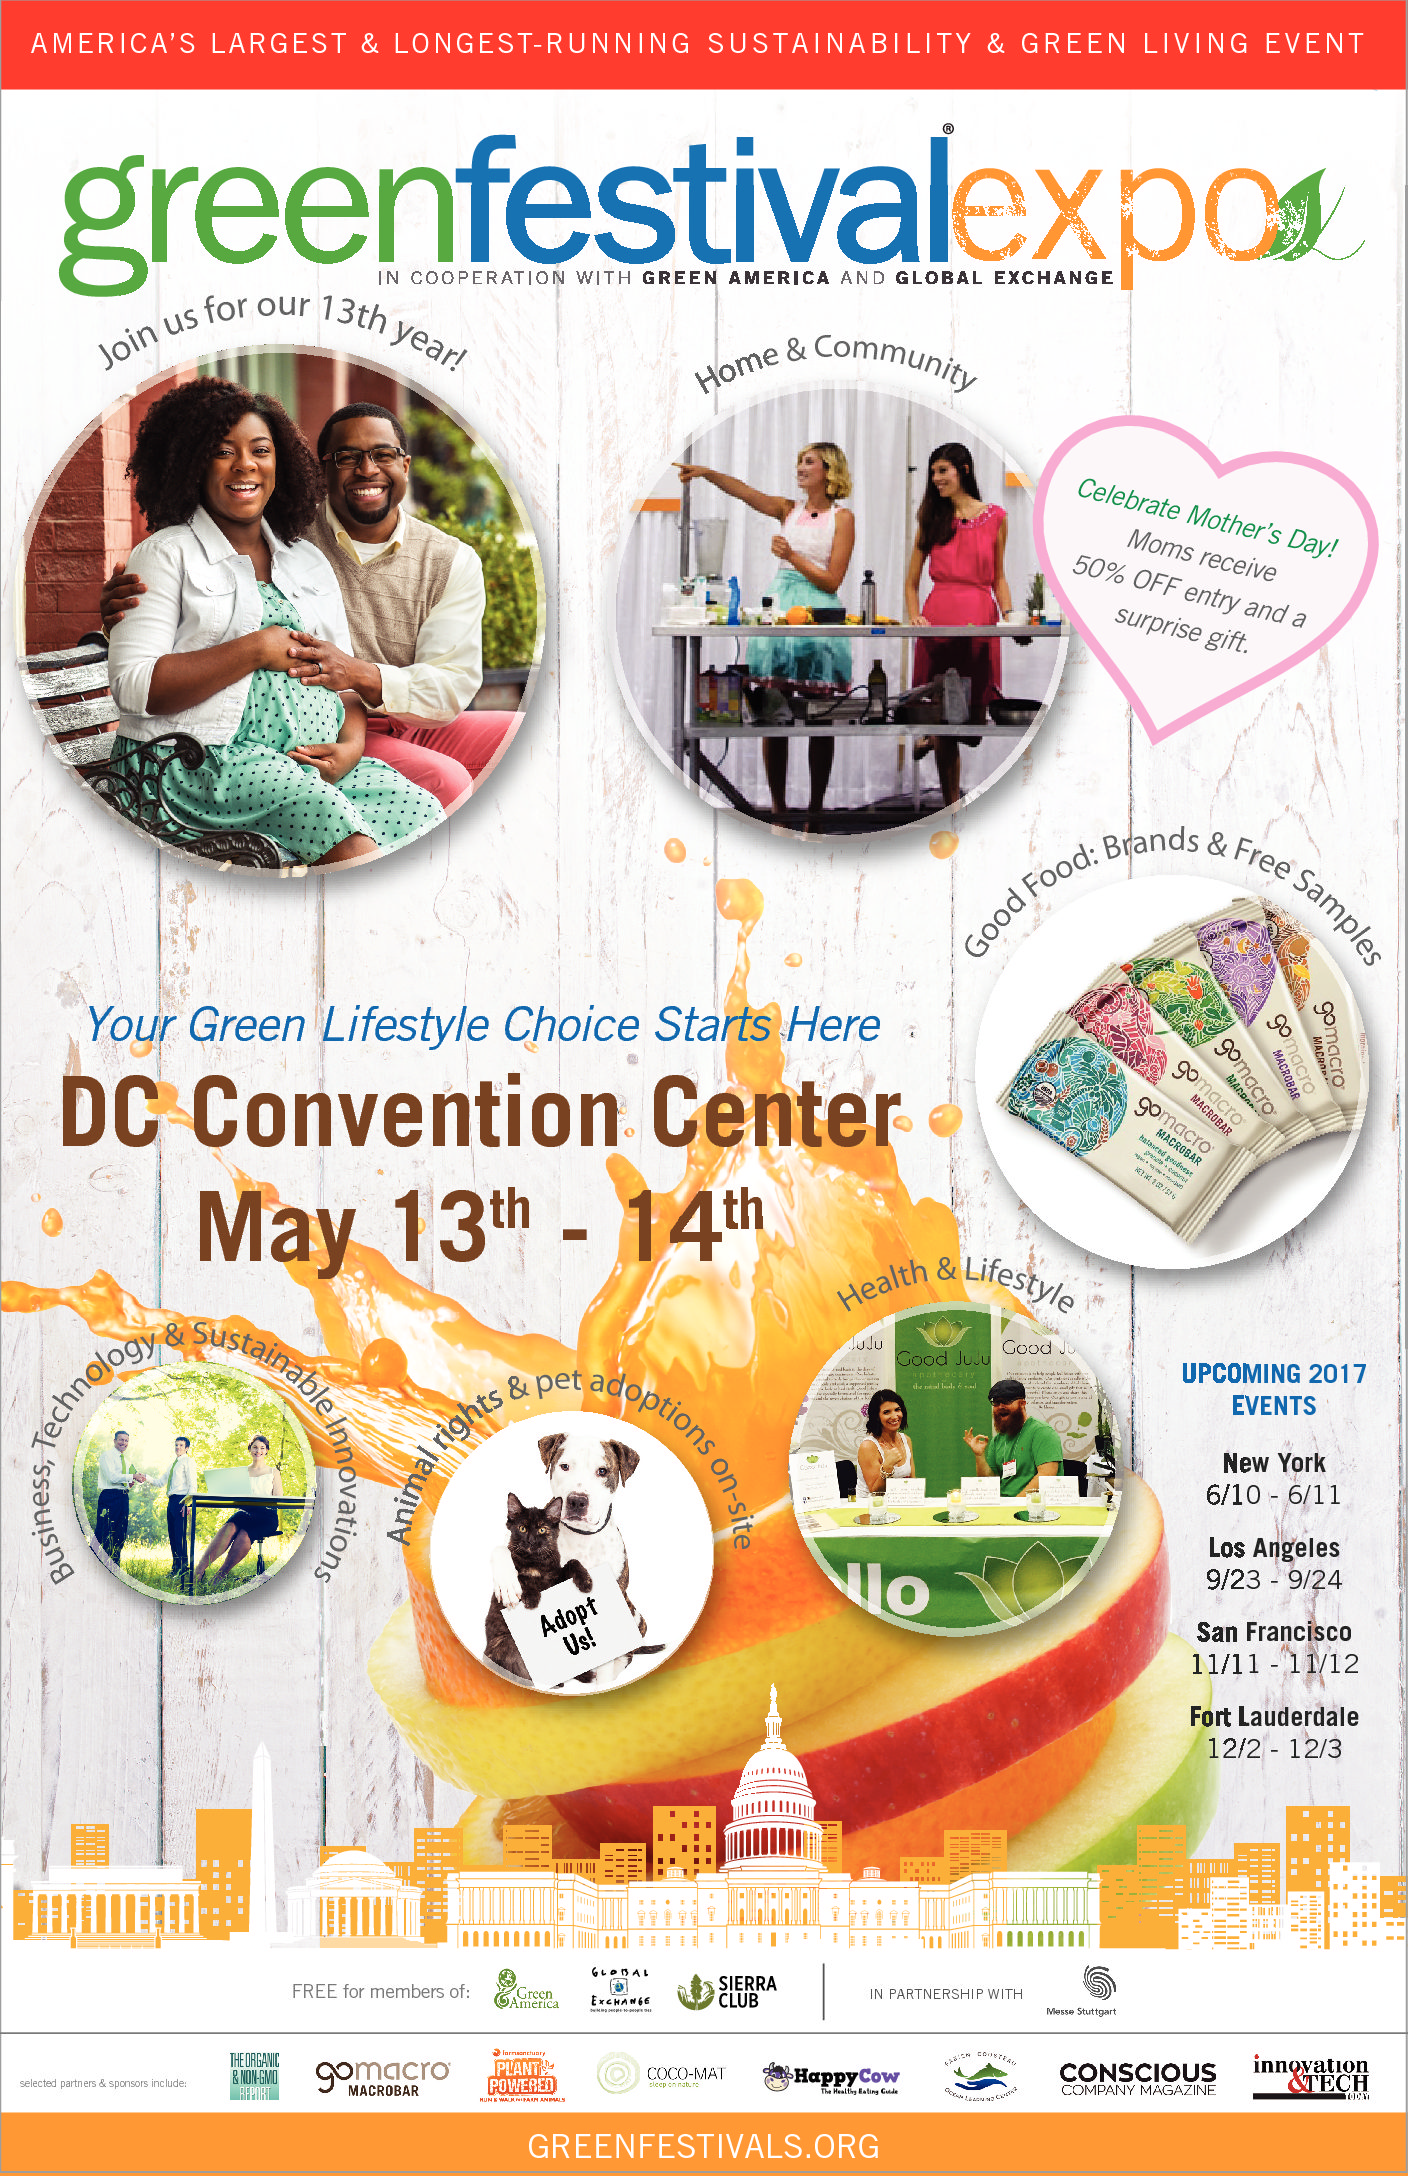 DC Greenfestival